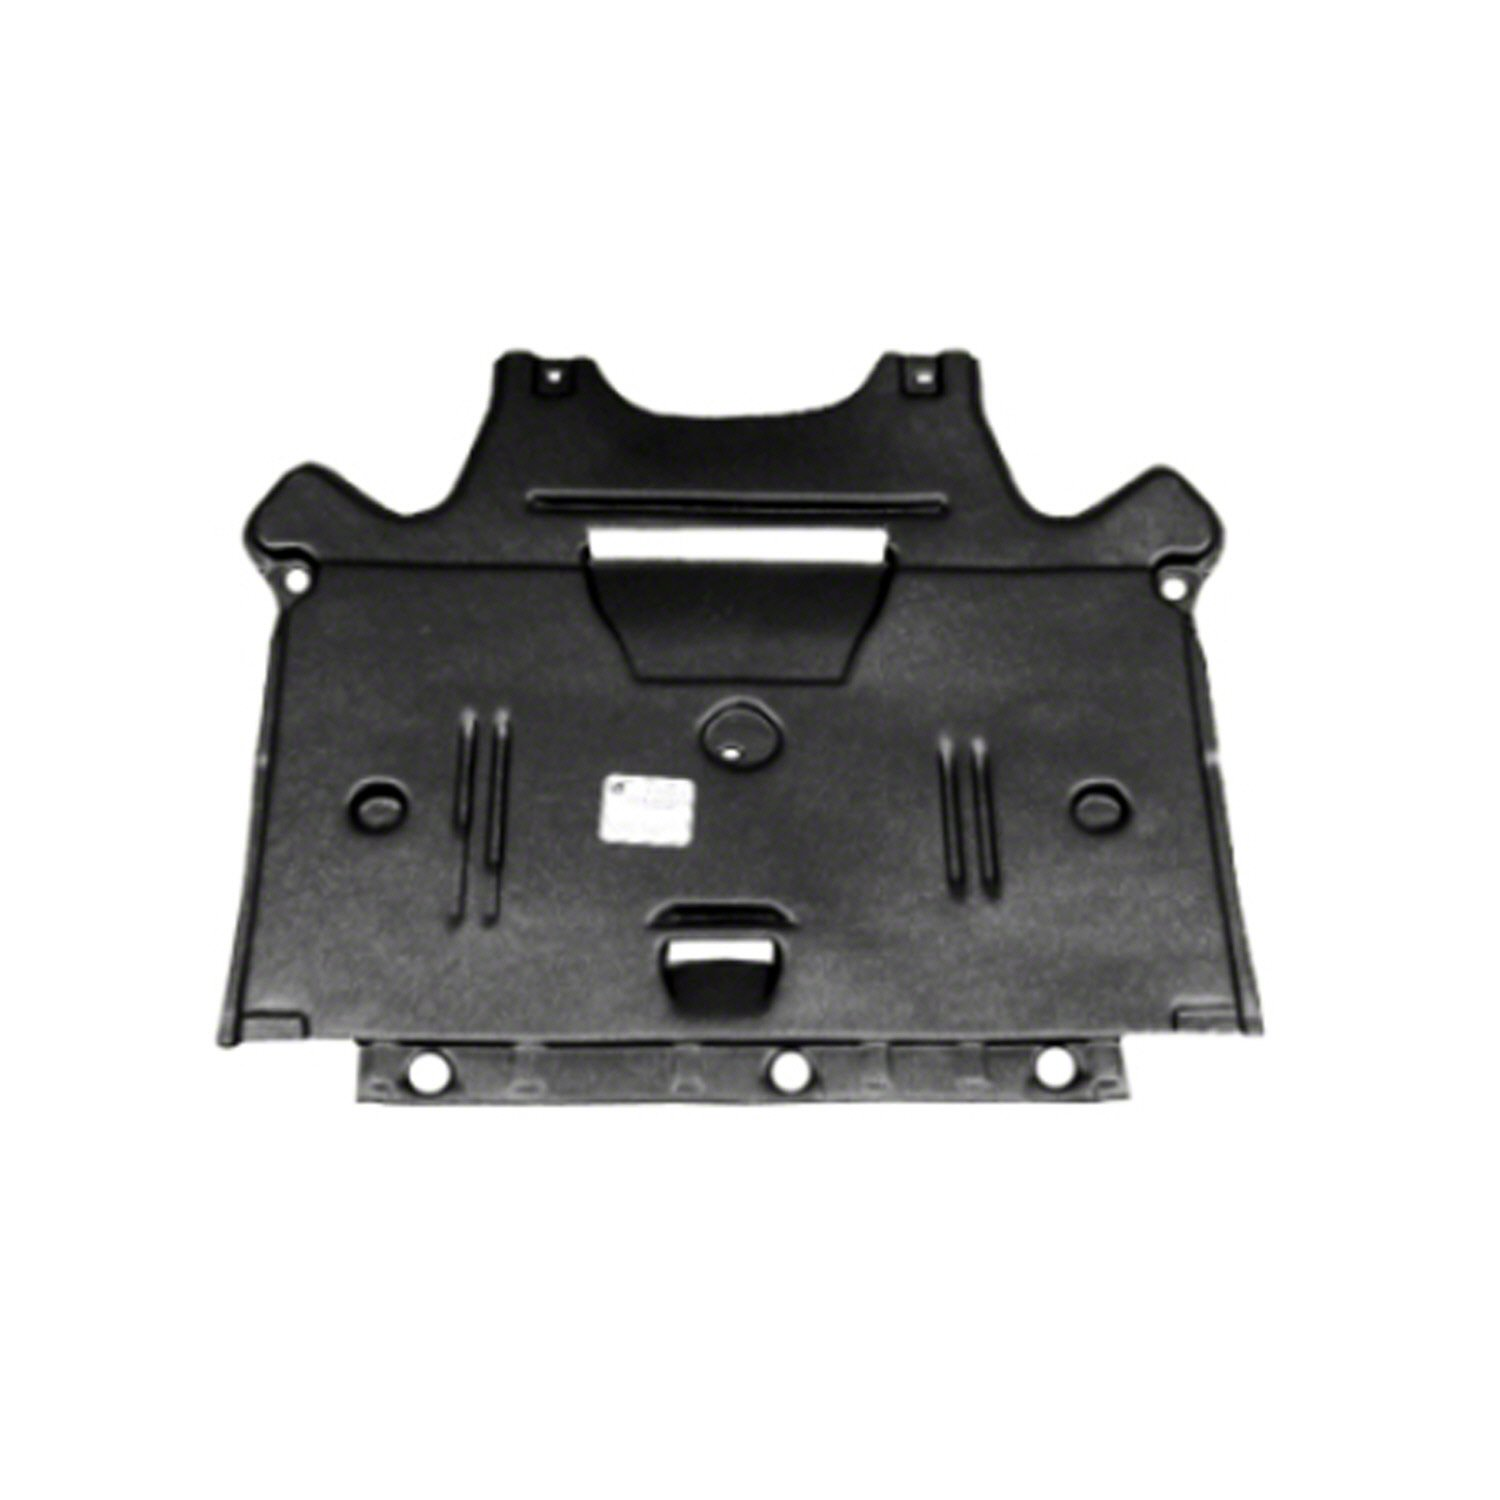 A4 allroad Q5 CPP AU1228120 Rear Engine Cover for Audi A4